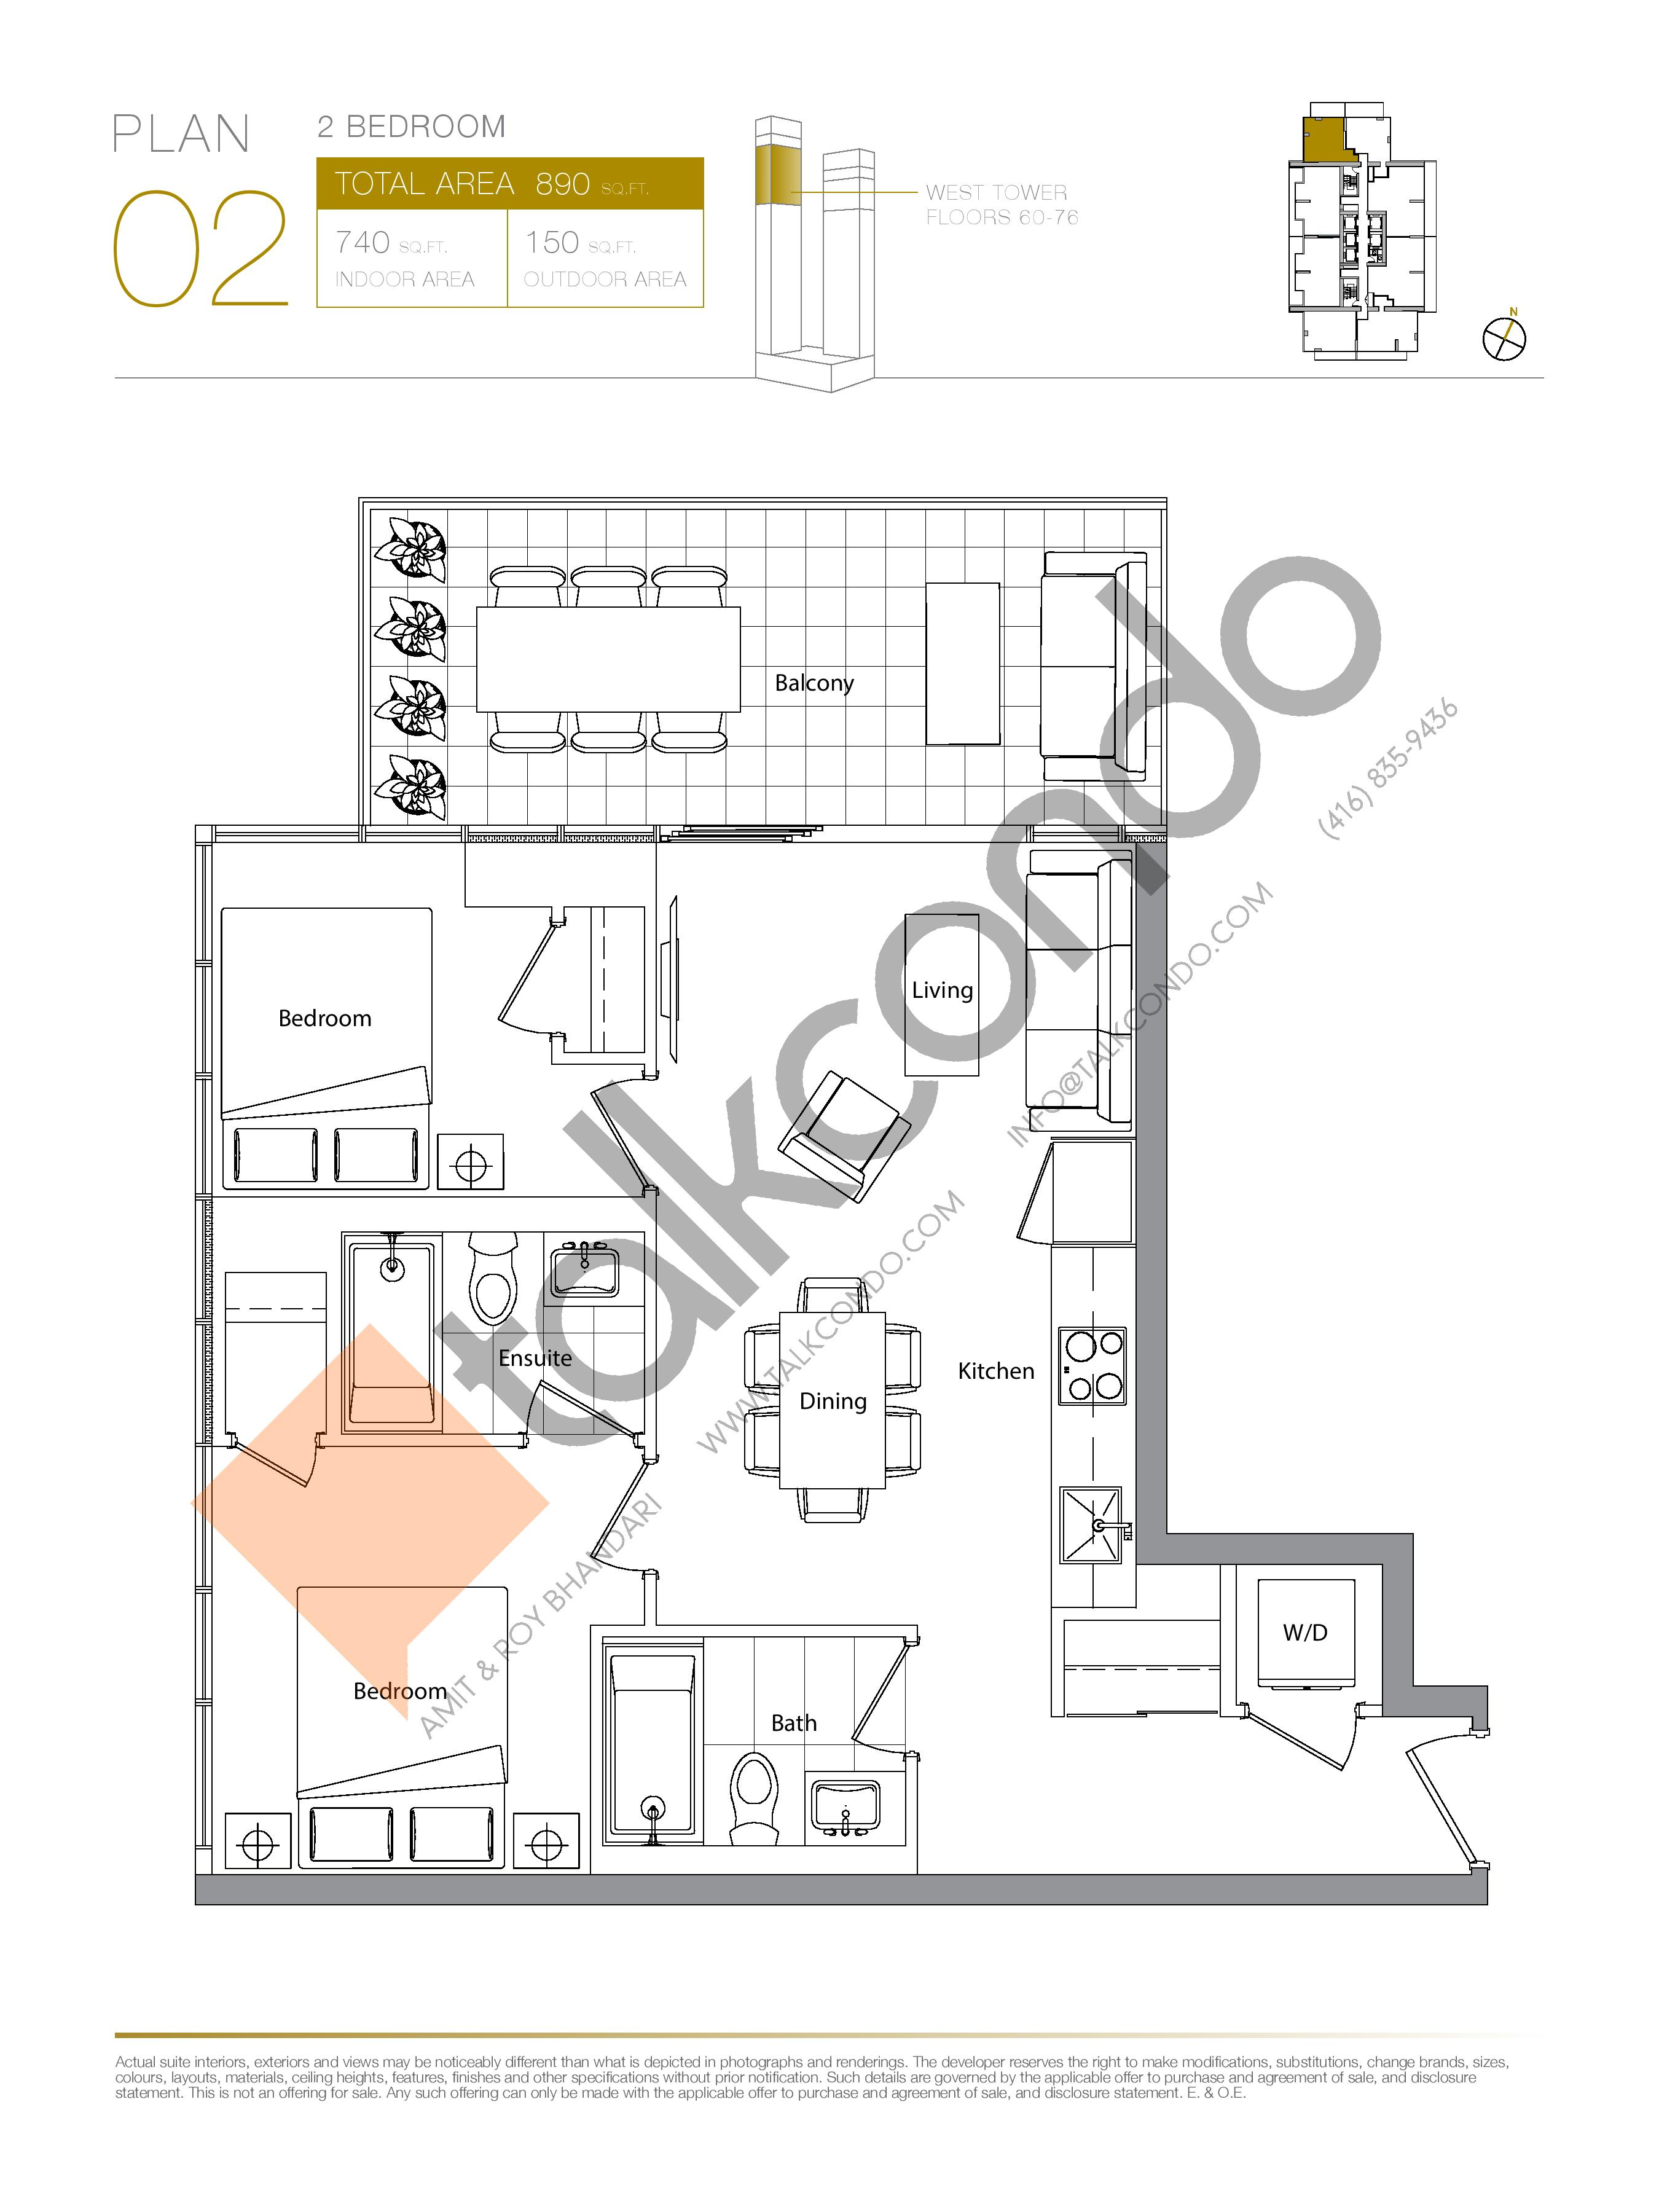 Plan 02 (New Release) Upper Floor Plan at Concord Canada House Condos - 740 sq.ft